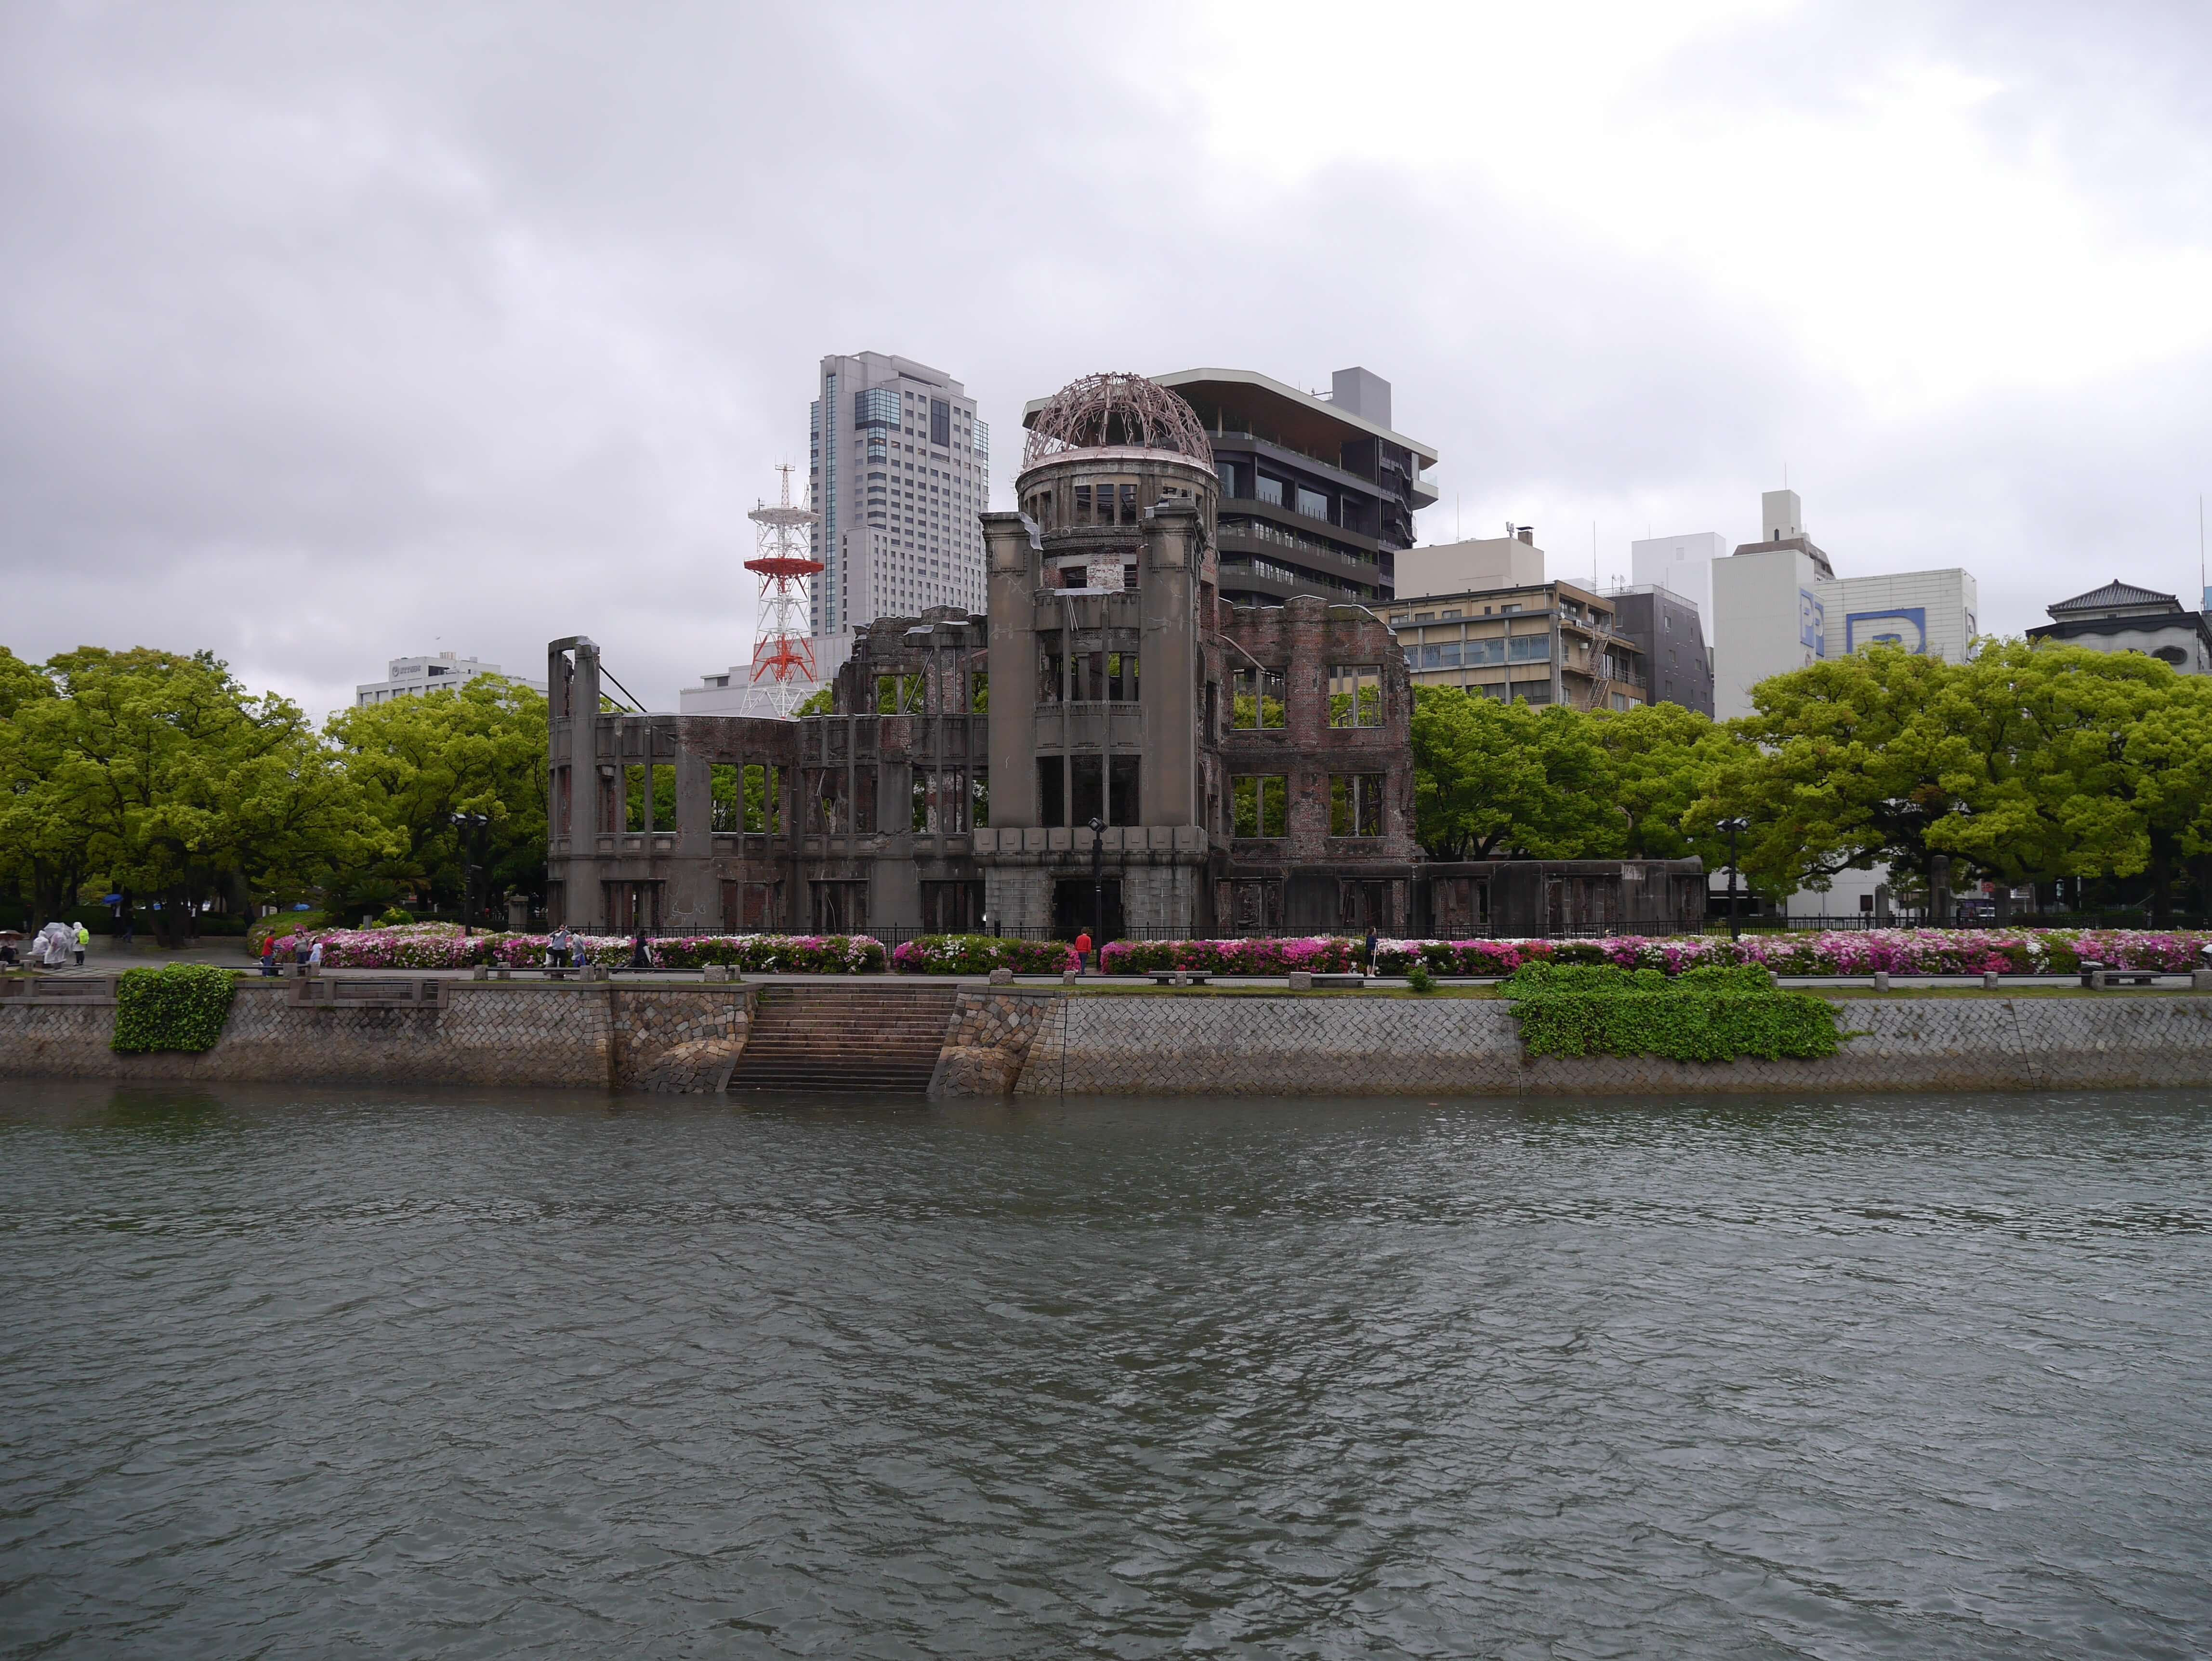 Hiroshima-Japan-river-monument-ruins